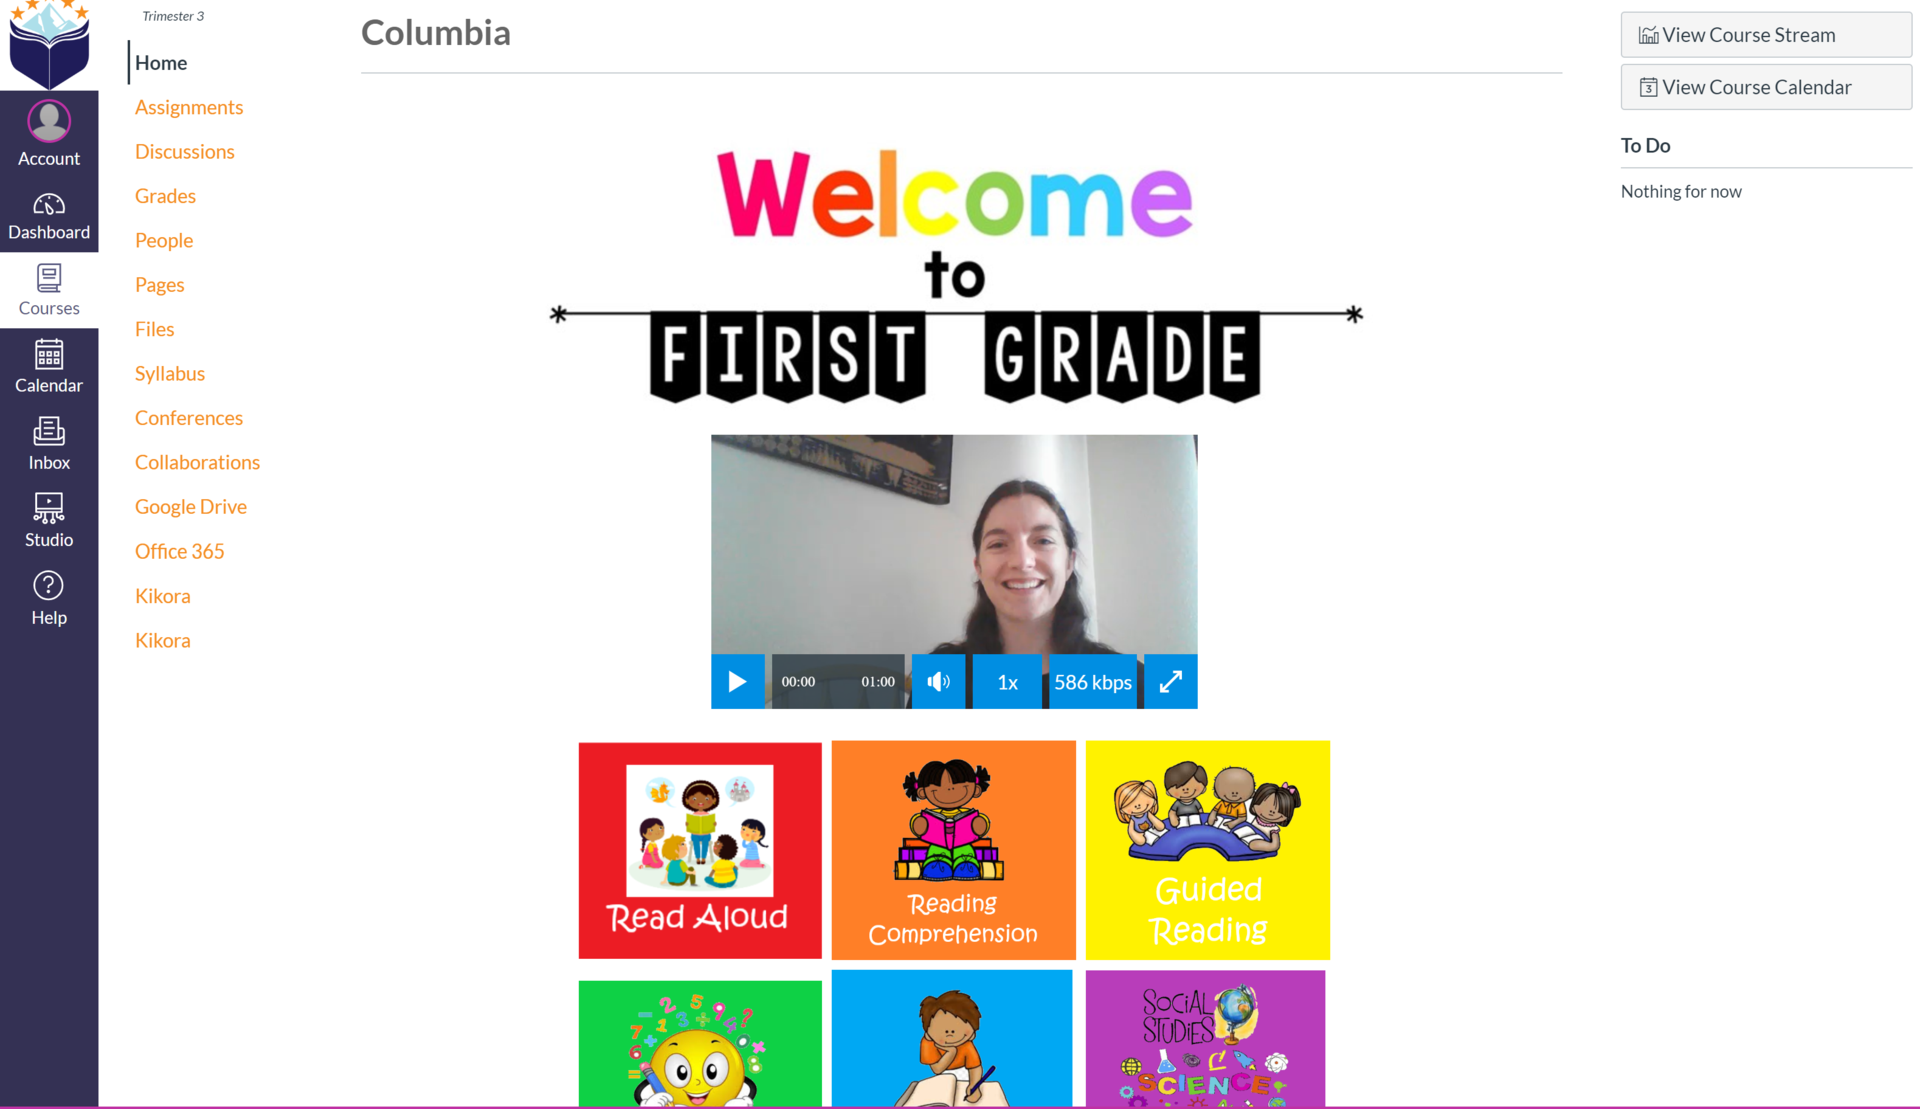 1st Grade Homepage